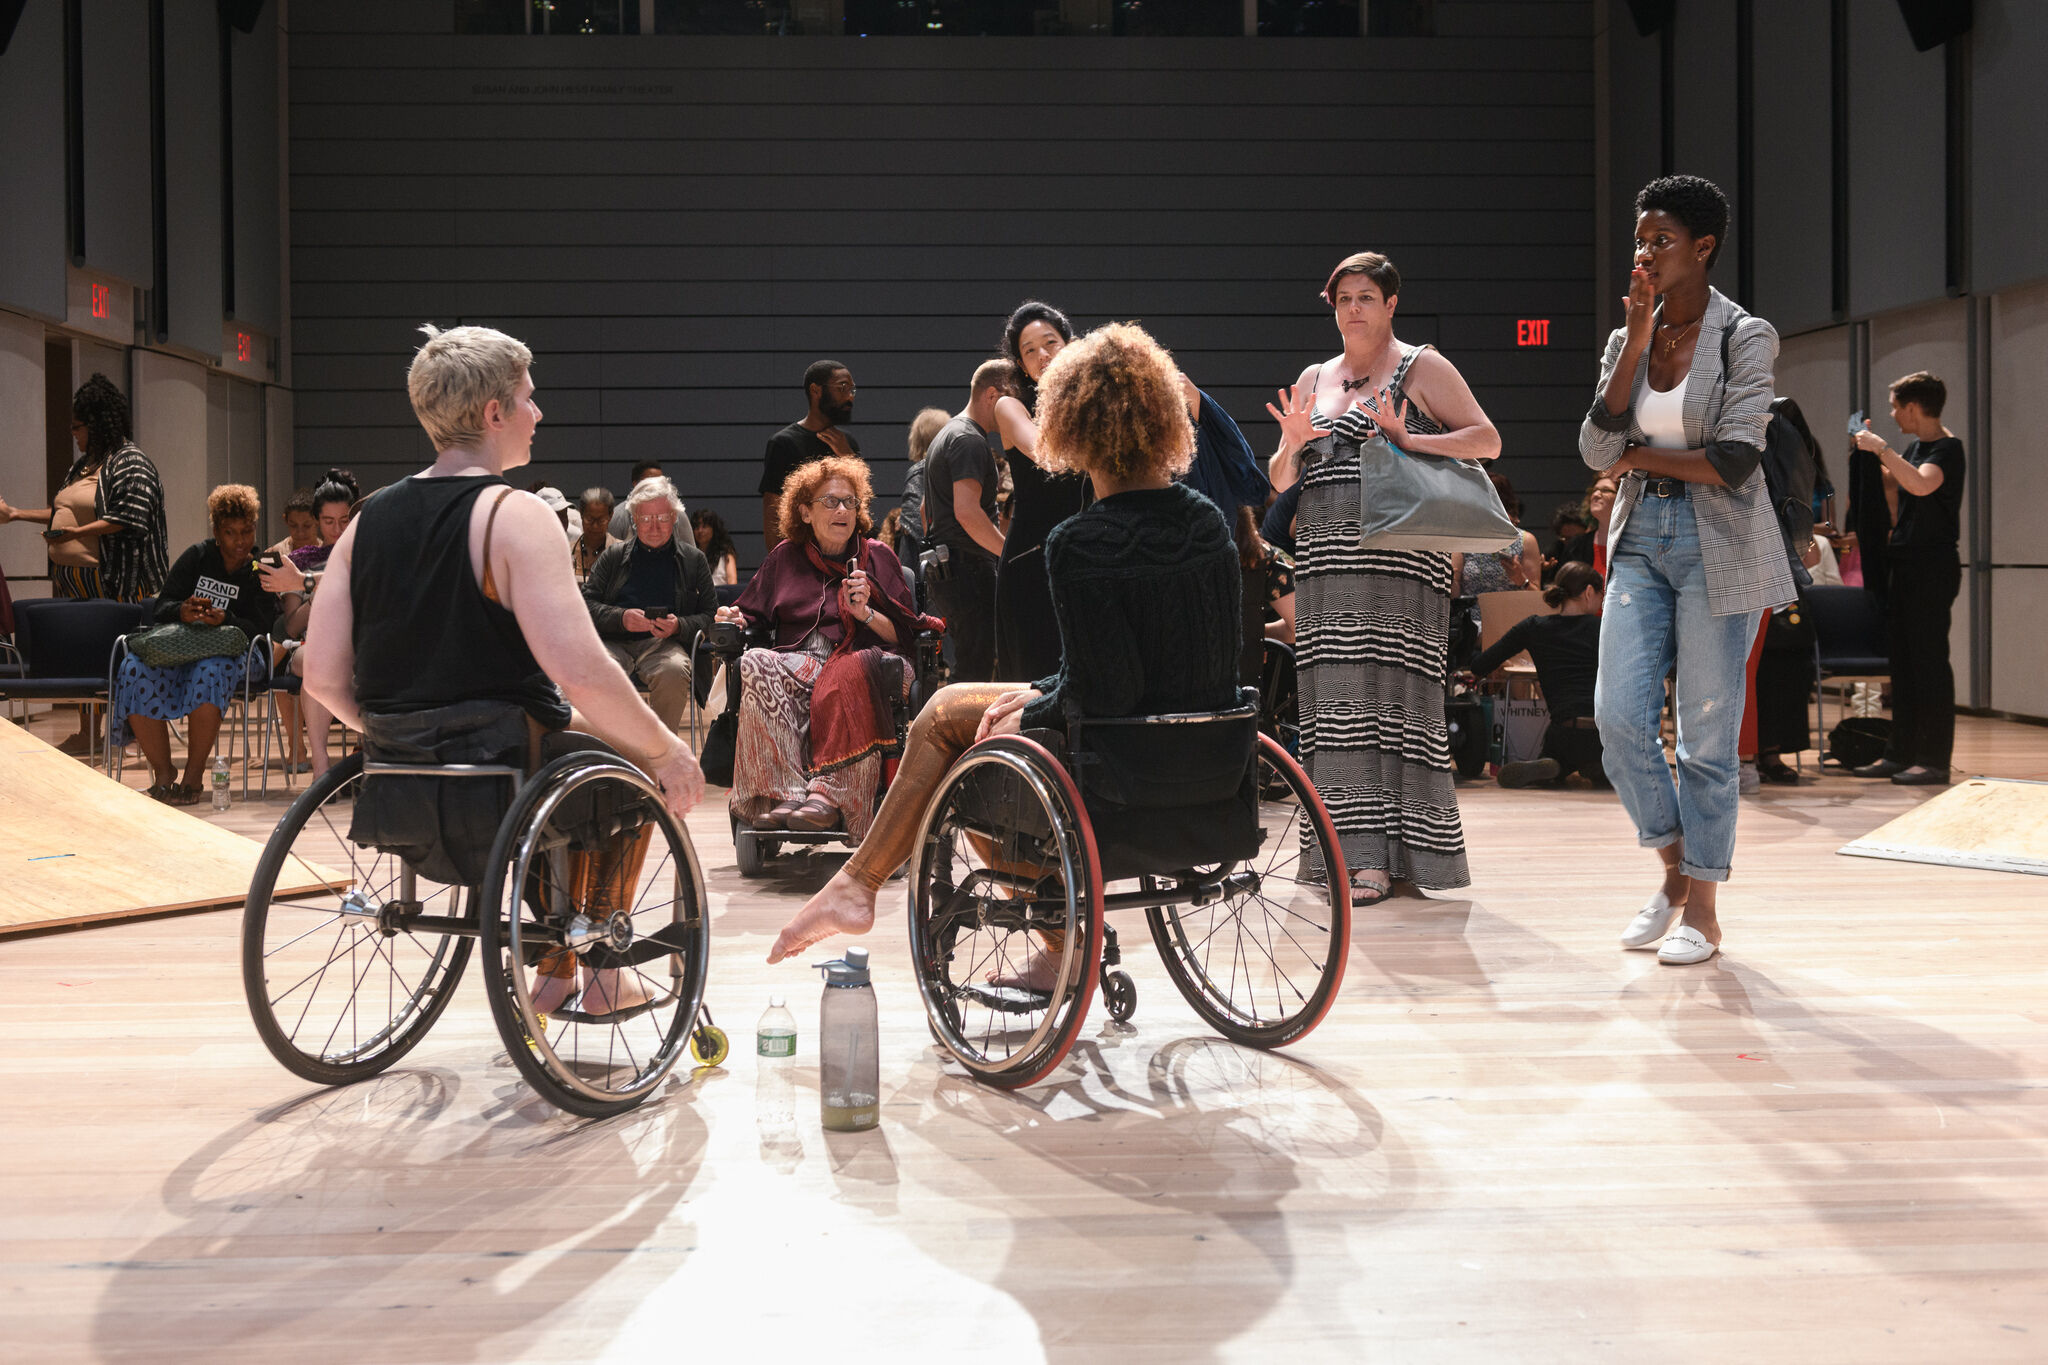 Two people in wheelchairs face away from the camera, engaged in a conversation with audience members gesturing.